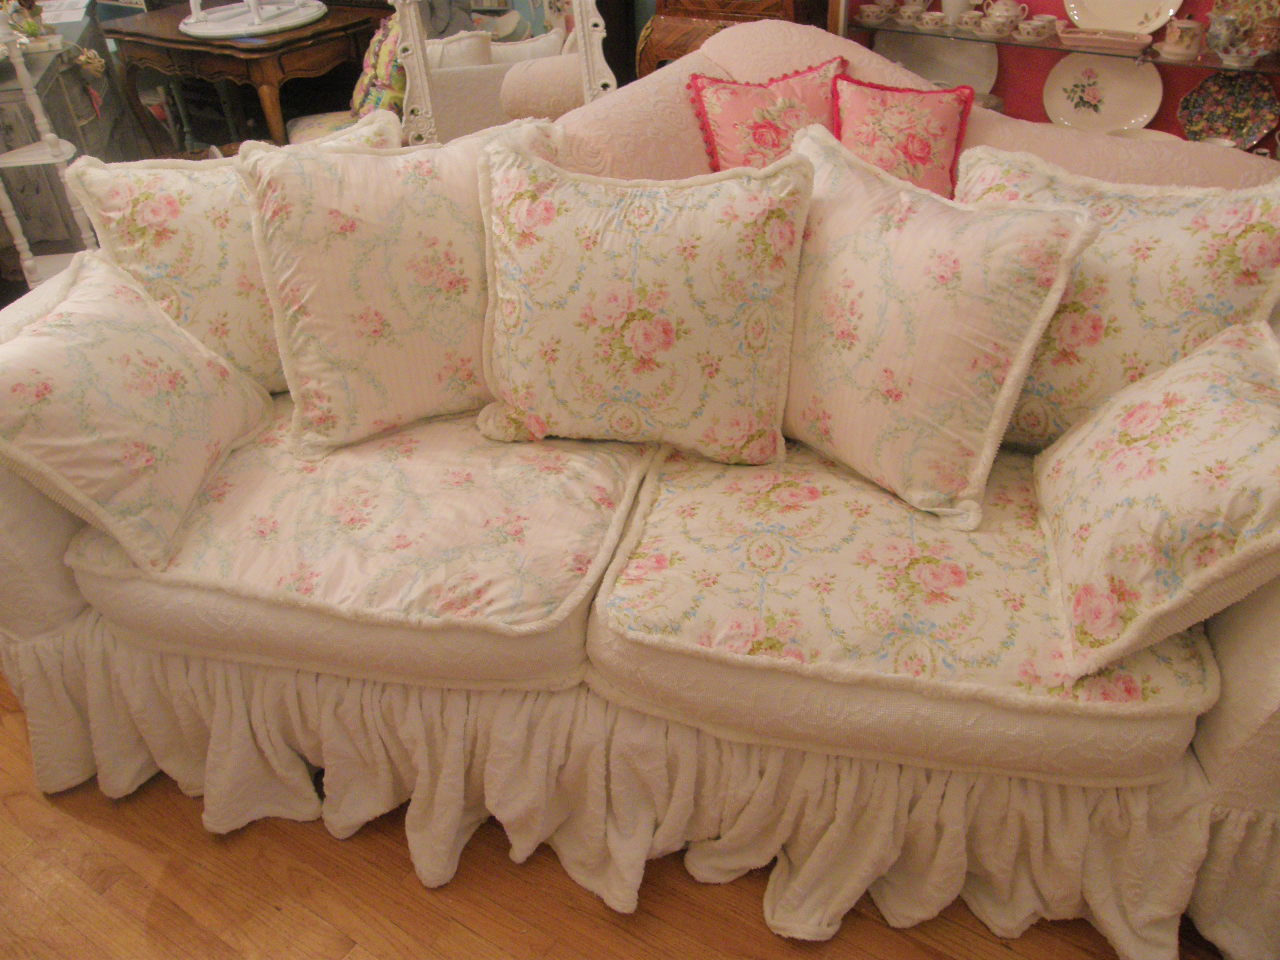 vintage chic furniture schenectady ny shabby chic slipcovered sofa with vintage chenille. Black Bedroom Furniture Sets. Home Design Ideas